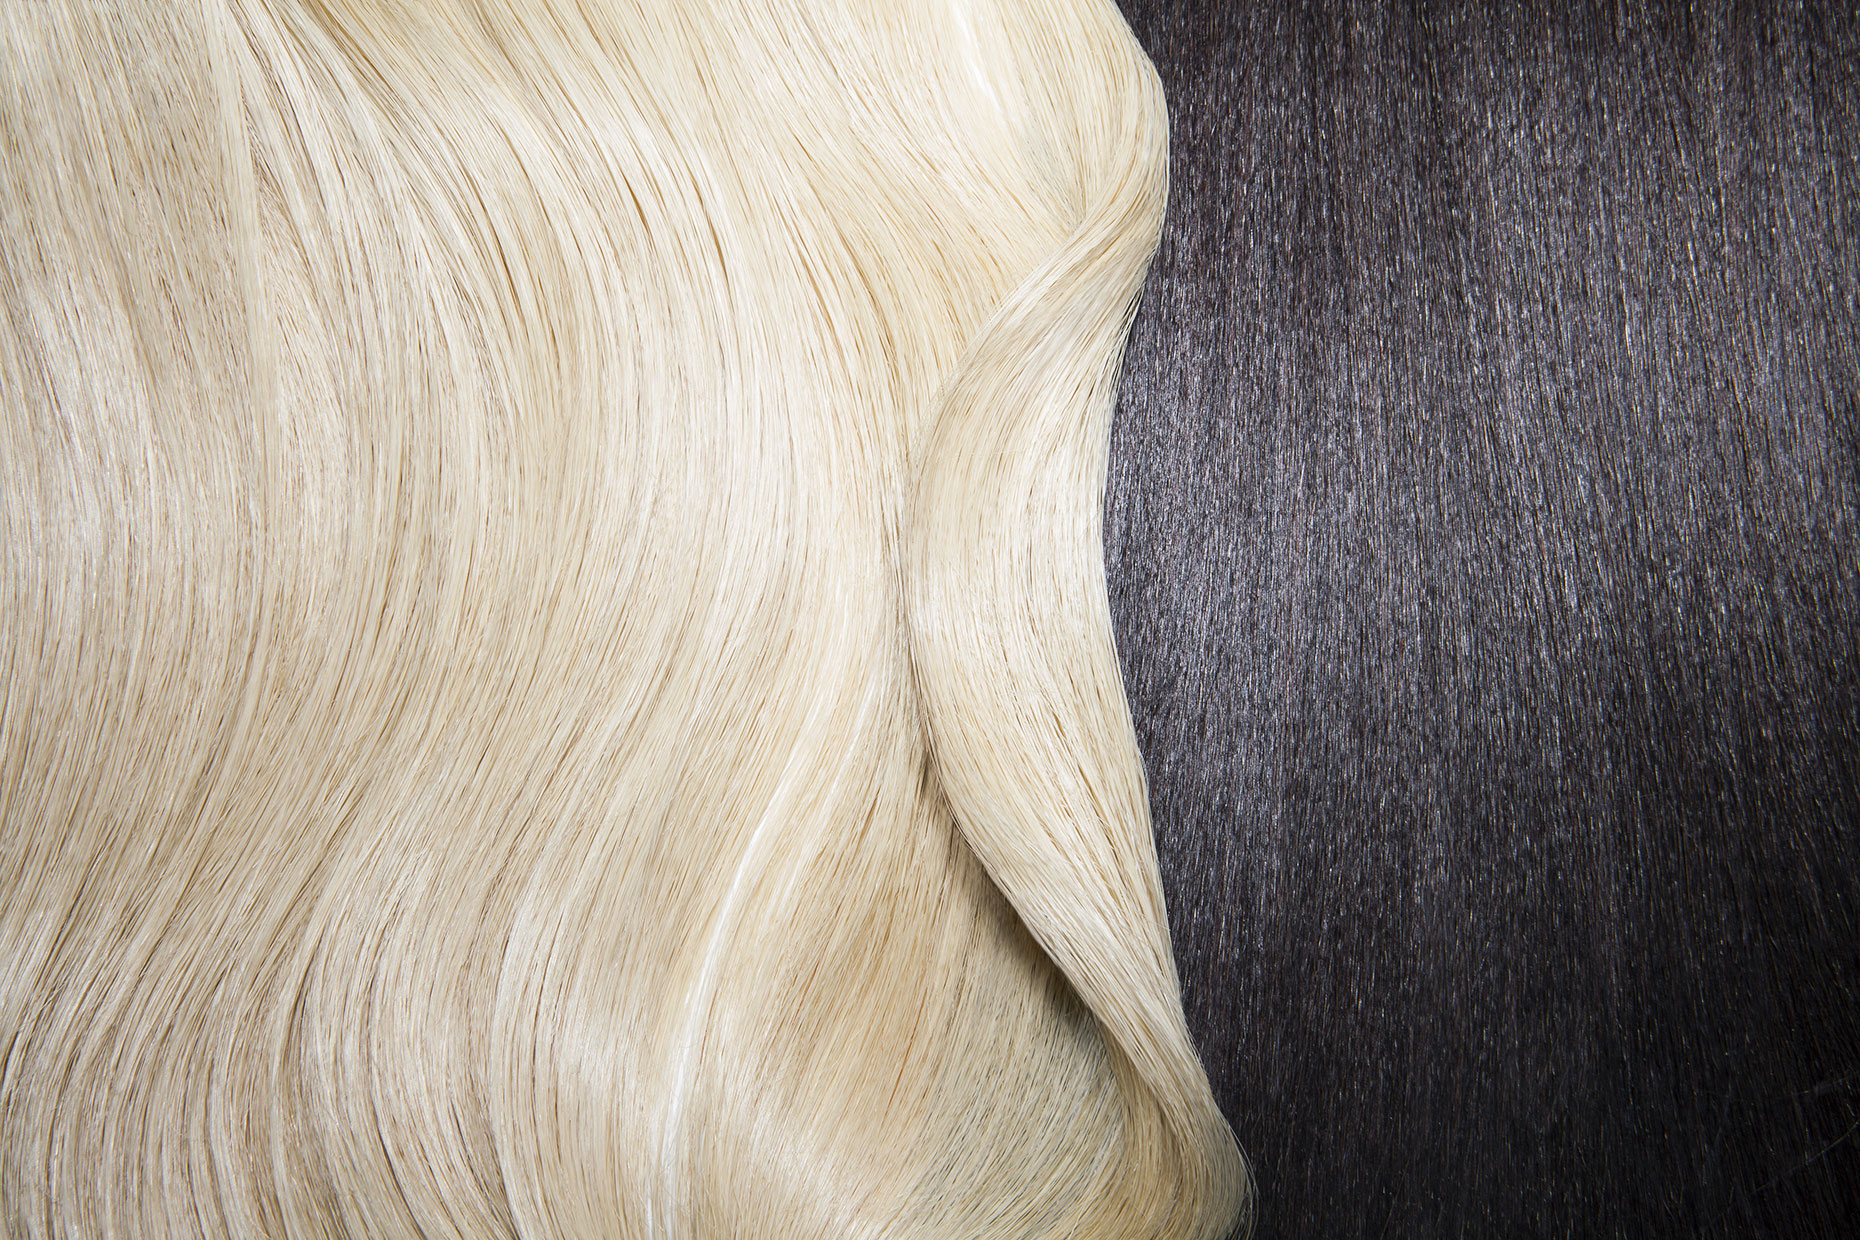 Still life of two different hair colors.